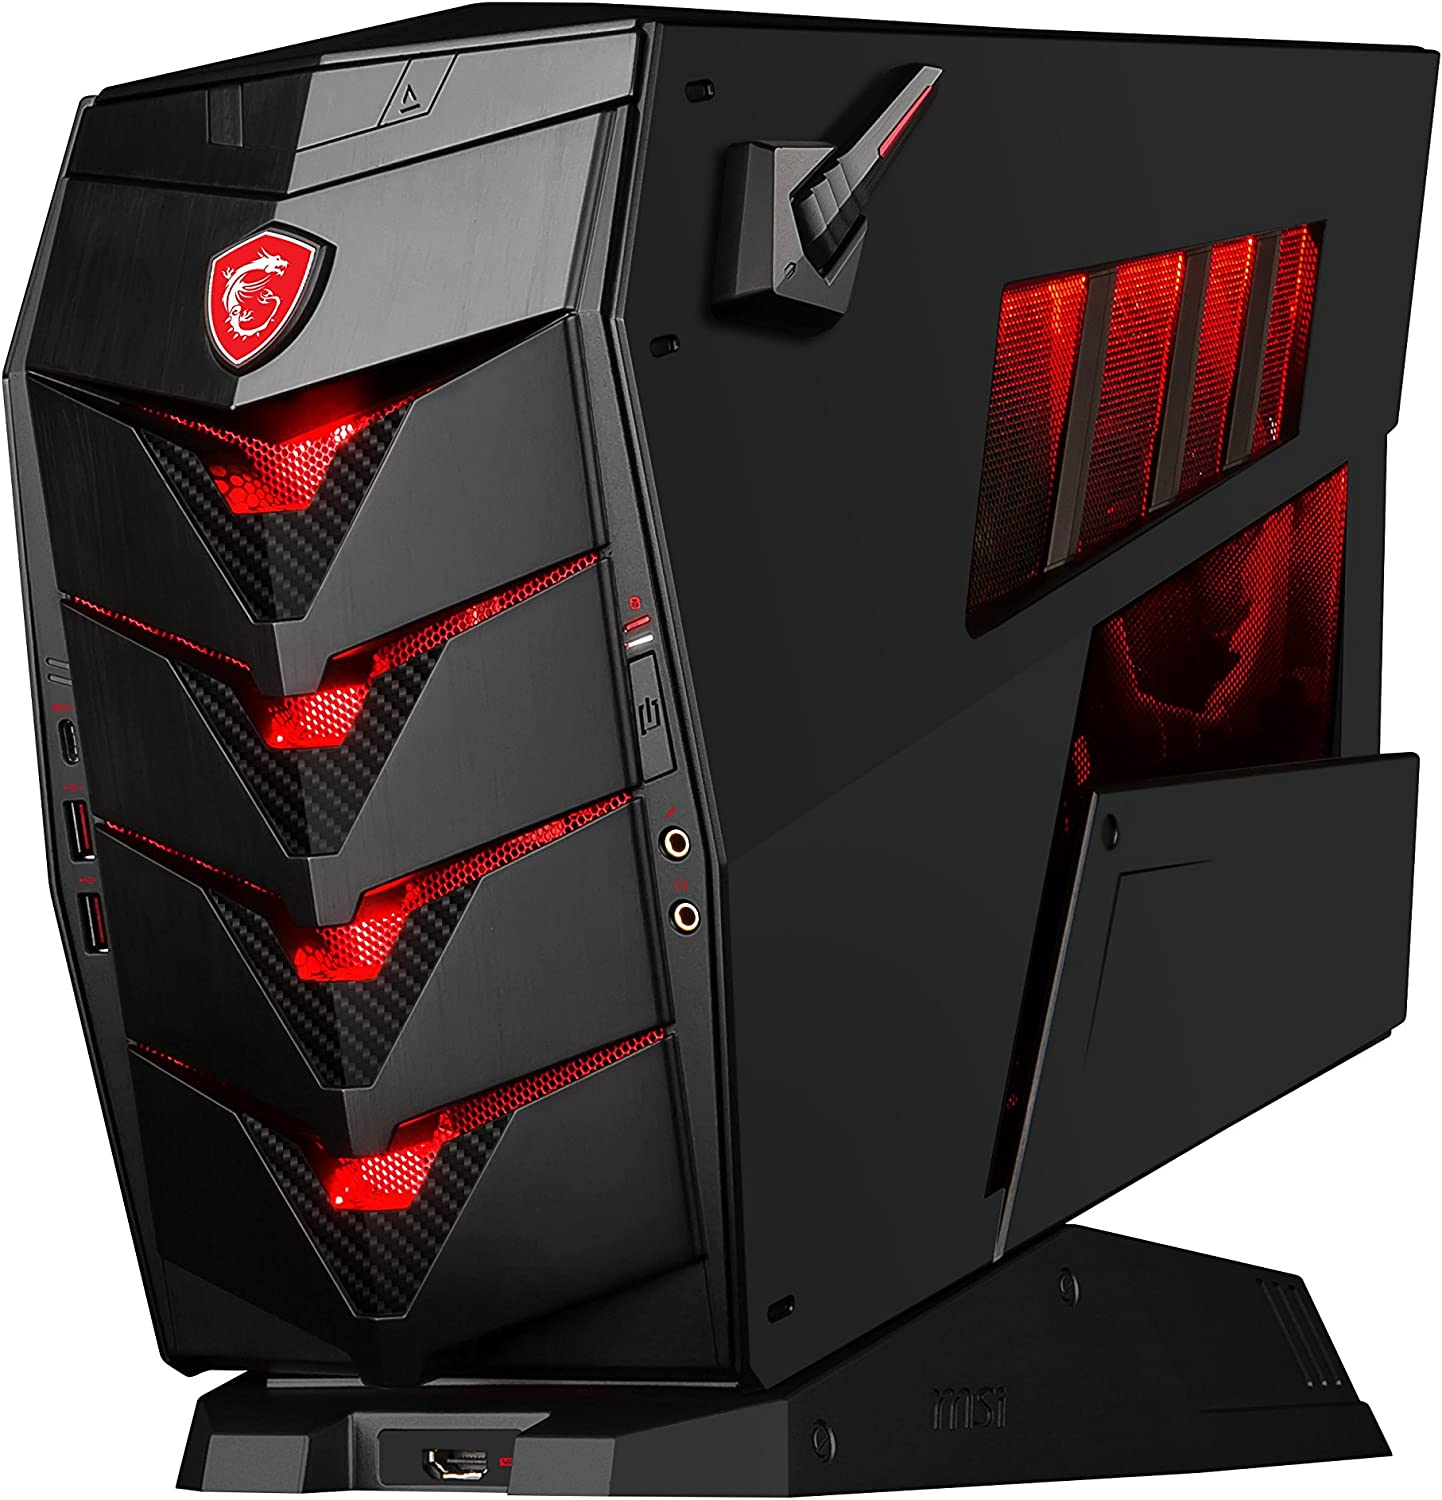 MSI Aegis 3 8RC-050EU - Ordenador de sobremesa (Intel Core i7-8700 , 16GB RAM + 16GB Optane, 1TB HDD + 128GB SSD, NVIDIA GeForce GTX 1060 de 6GB, Windows 10 Home) negro